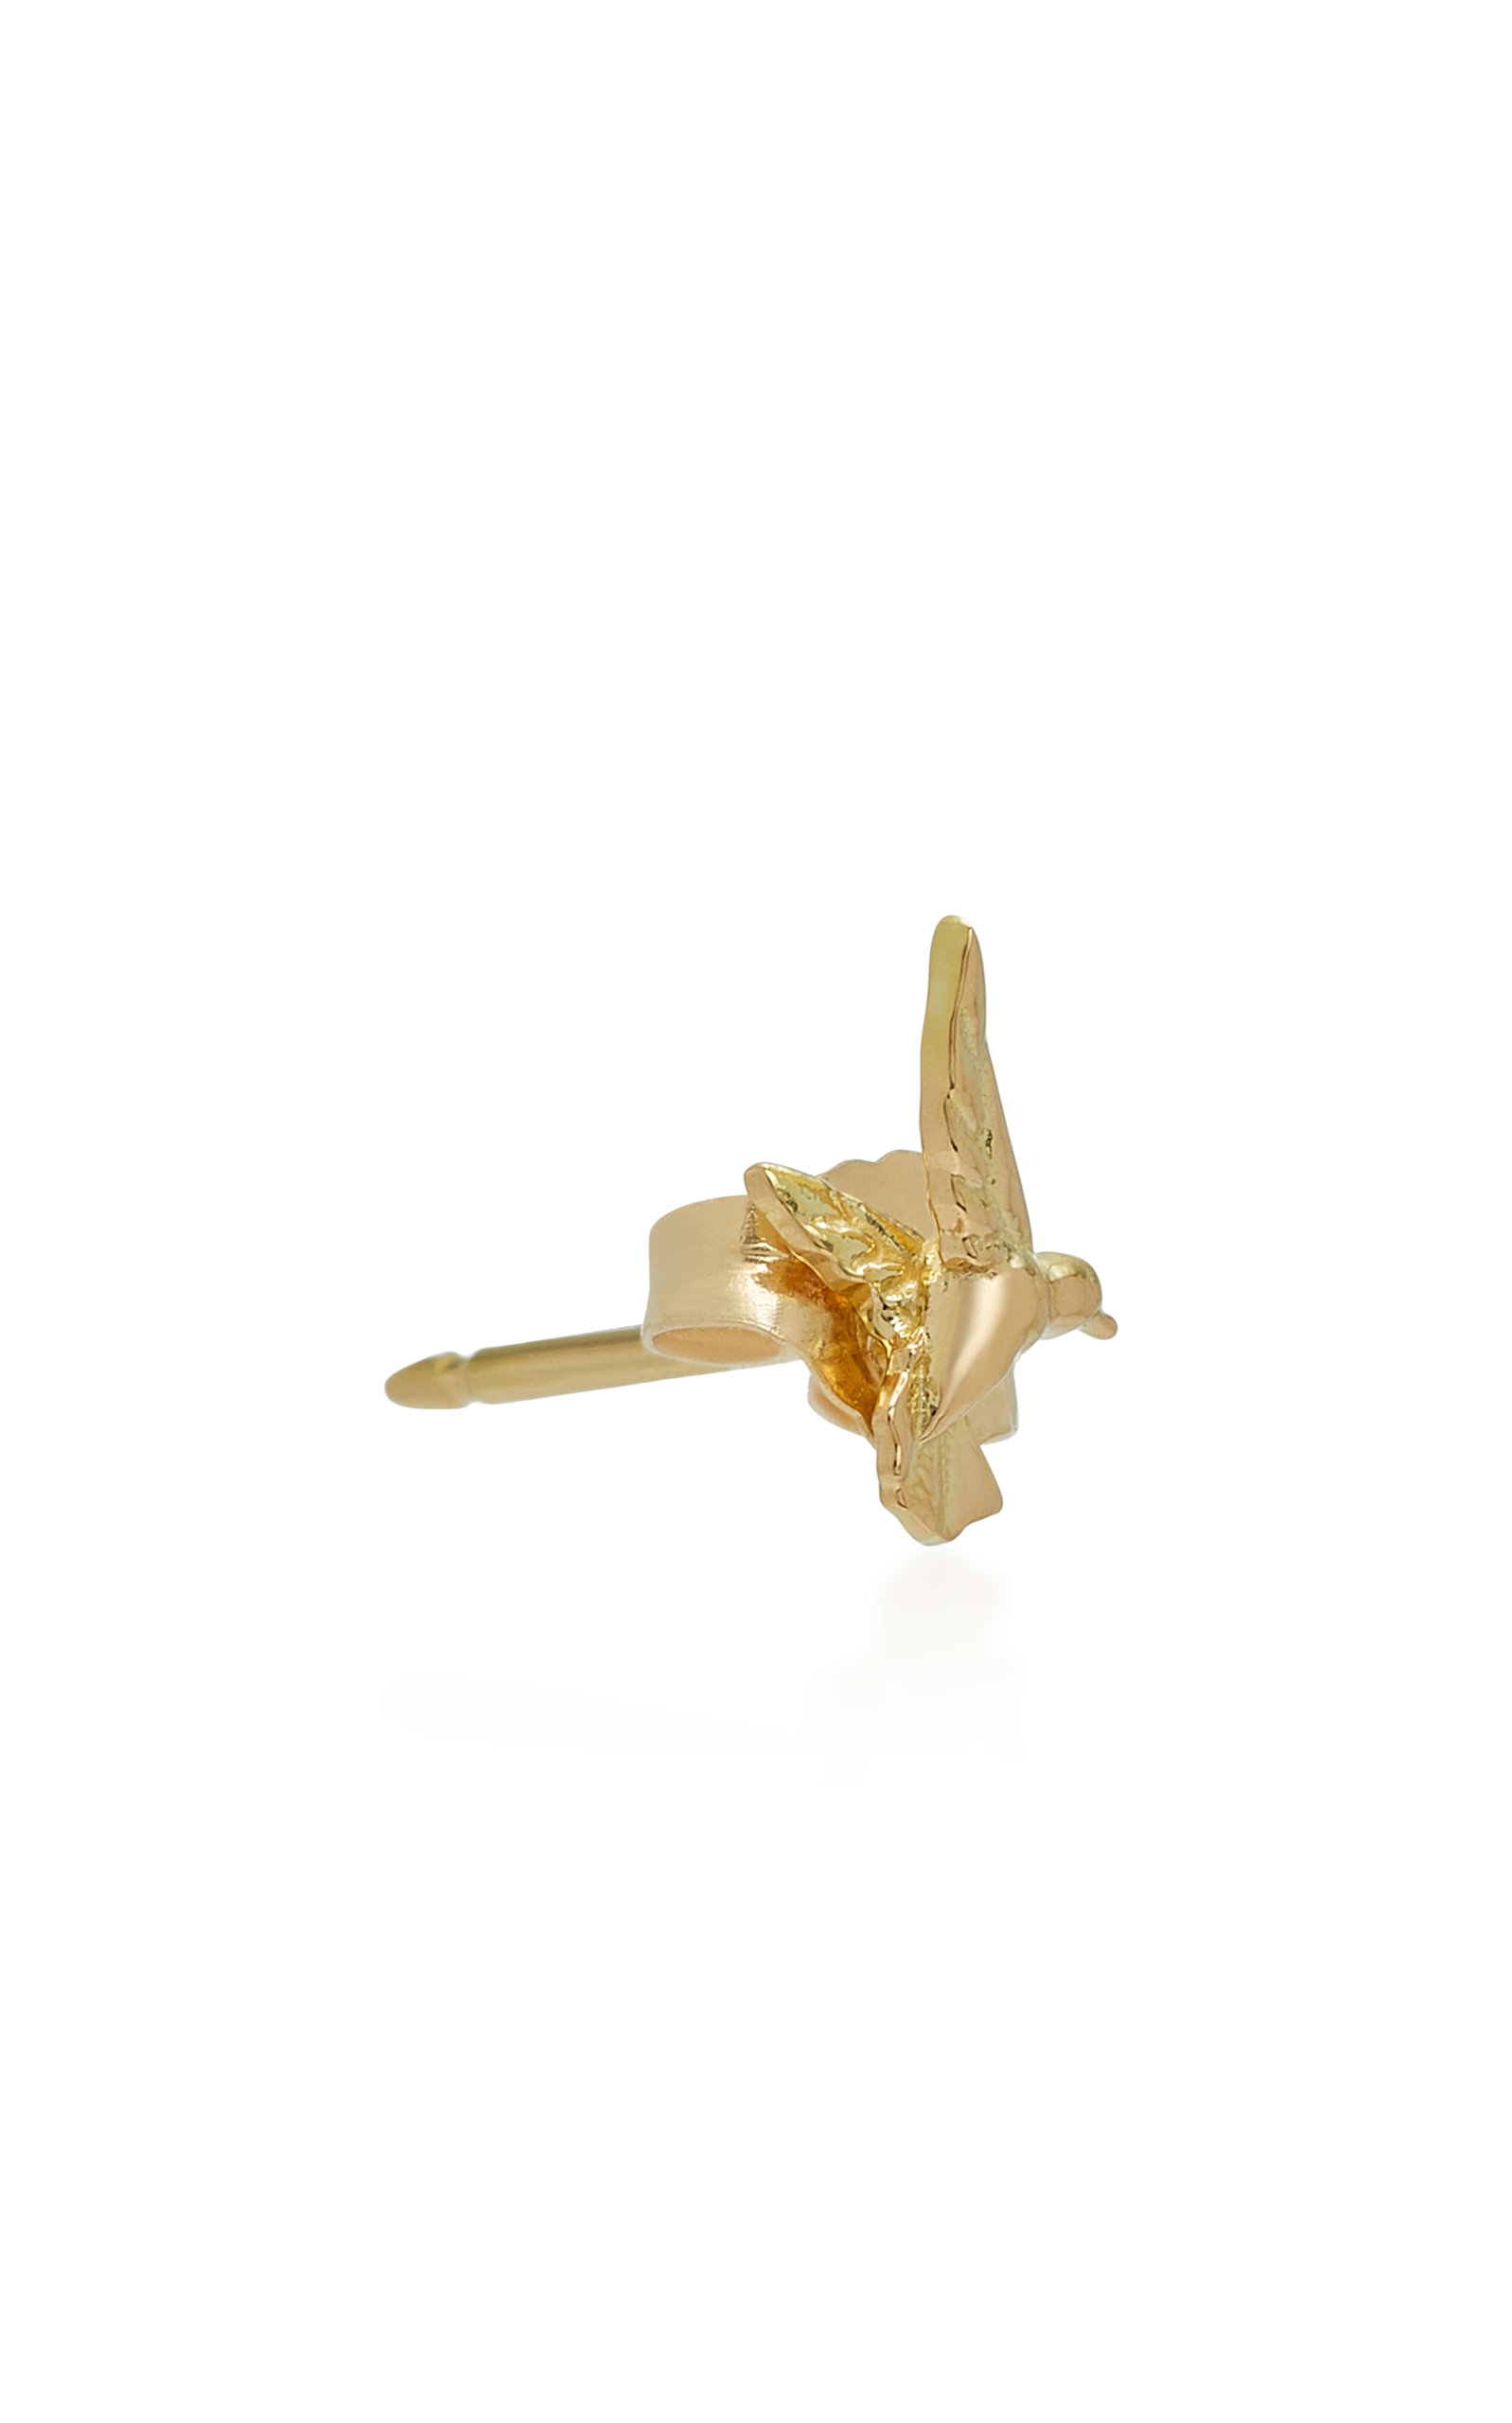 MO Exclusive Single Hummingbird Earring for Left Ear Brent Neale kkJ3tVr